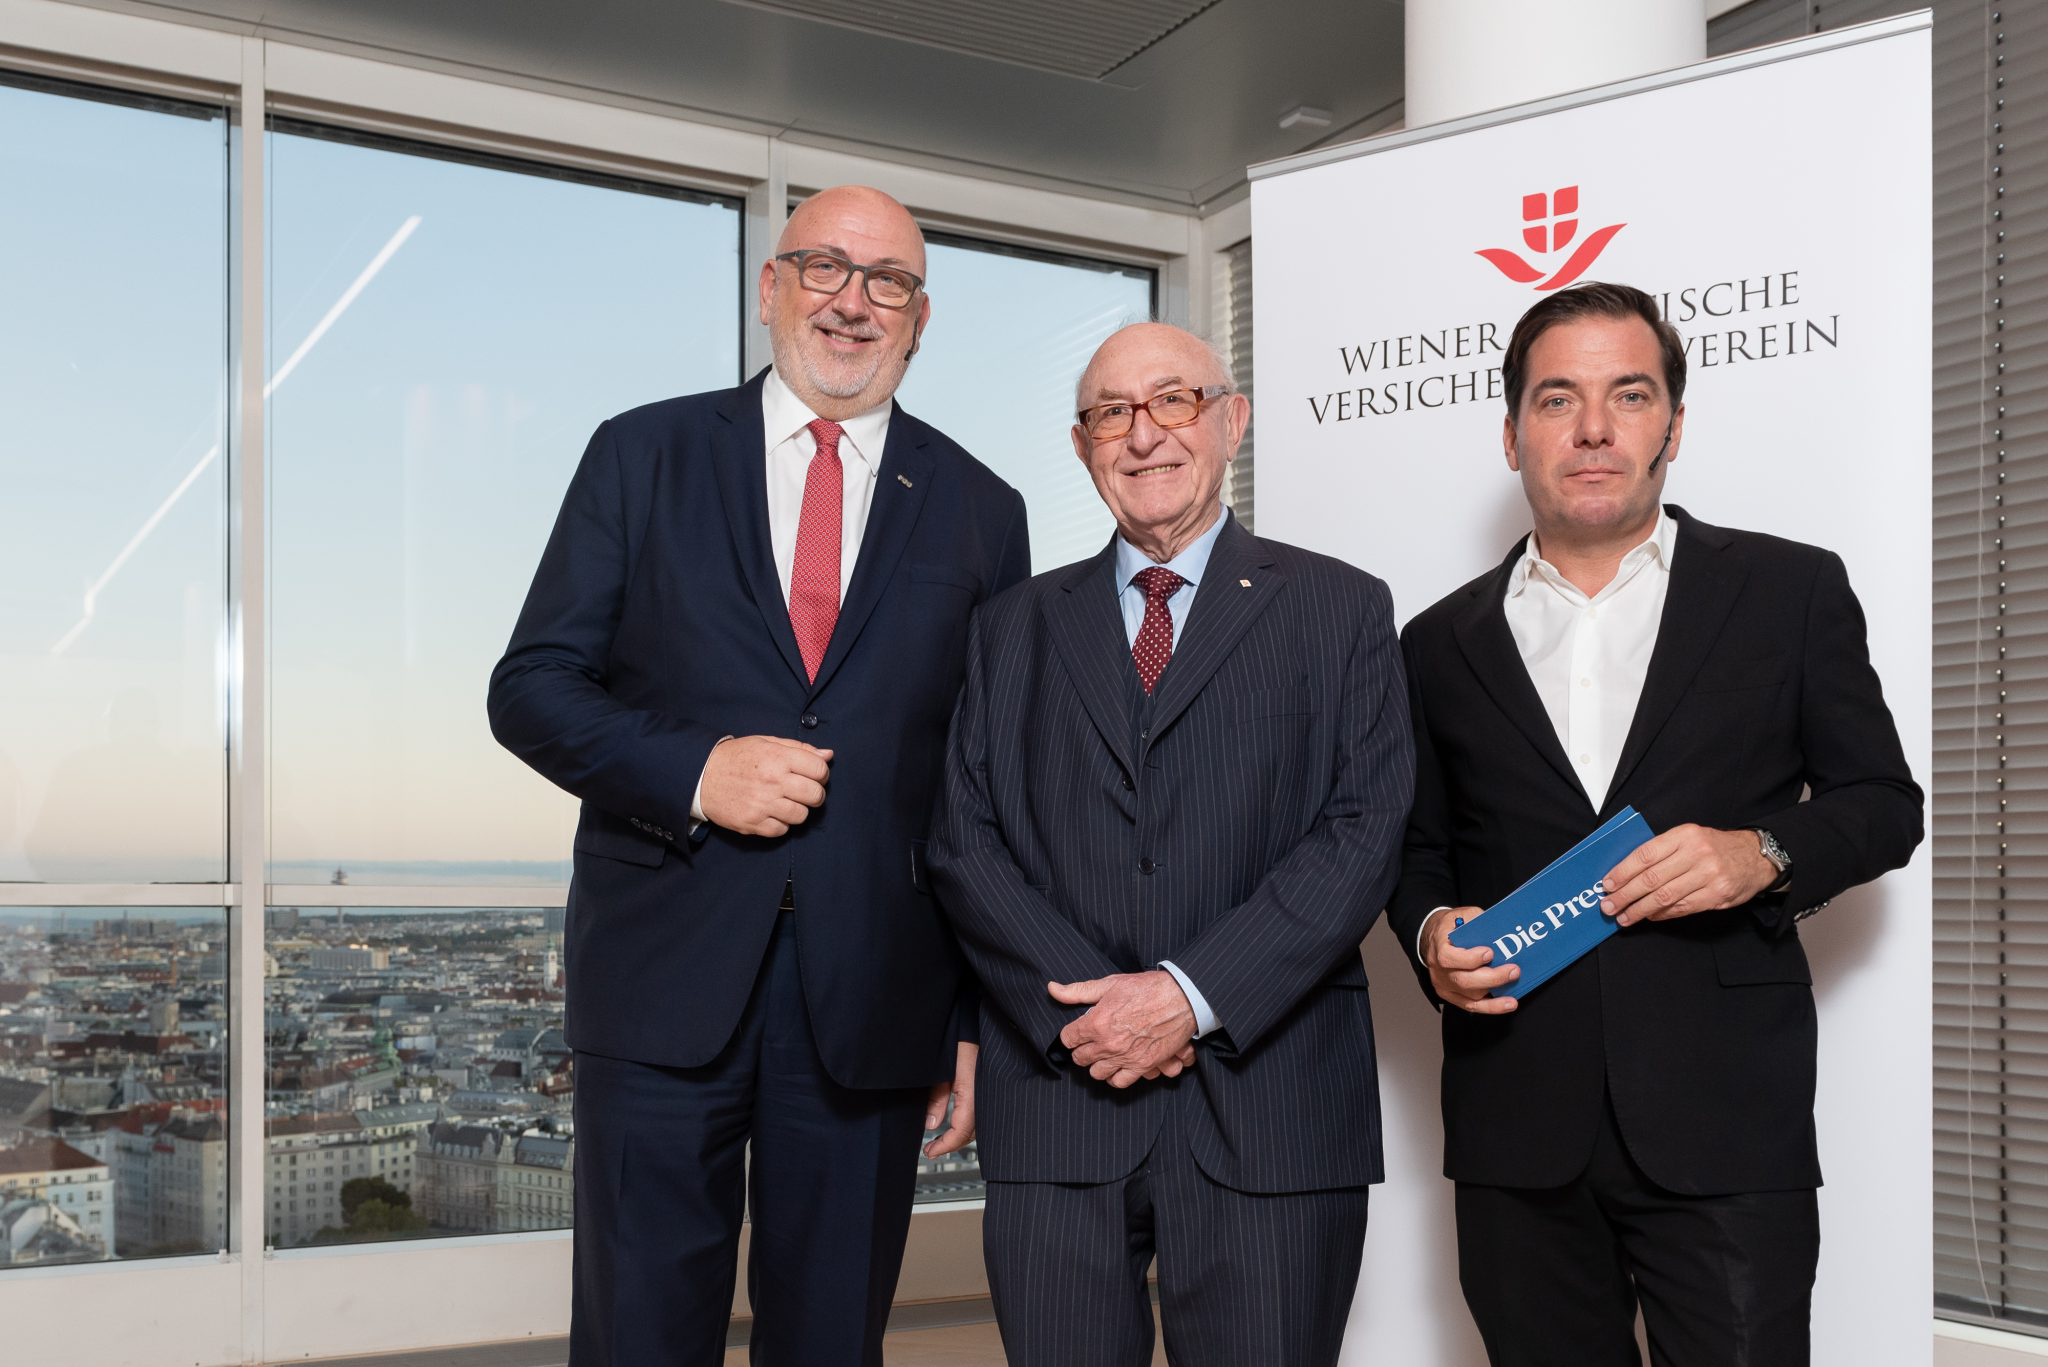 On the picture from left: ÖBB CEO Andreas Matthä, Chairman of the Managing Board of Wiener Städtische Versicherungsverein Günter Geyer &